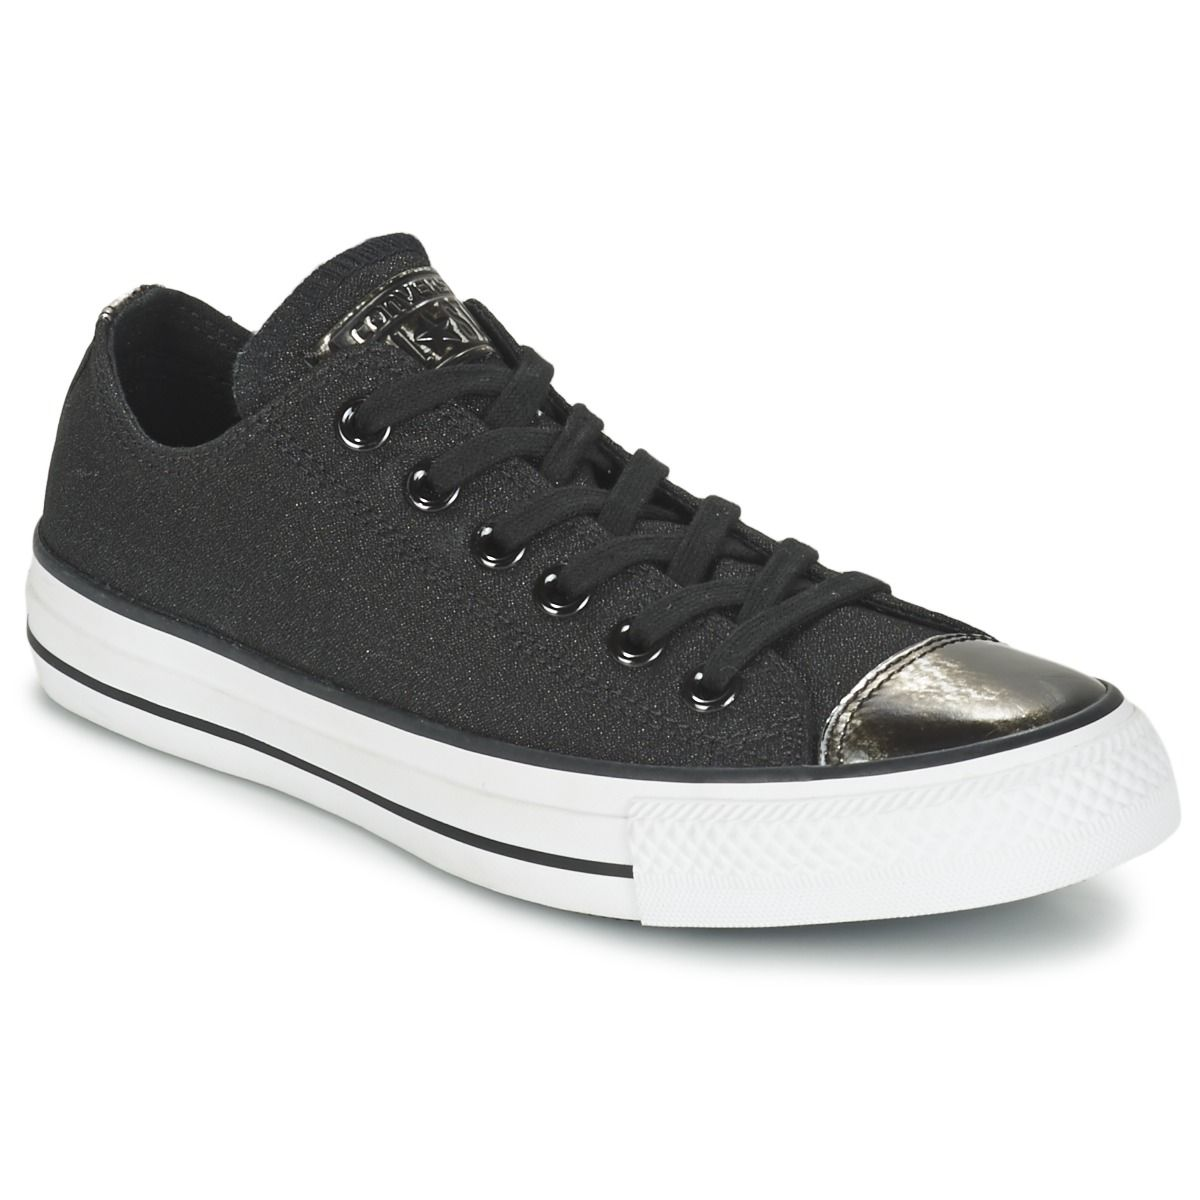 Converse CHUCK TAYLOR ALL STAR BRUSH OFF TOECAP OX | Pour